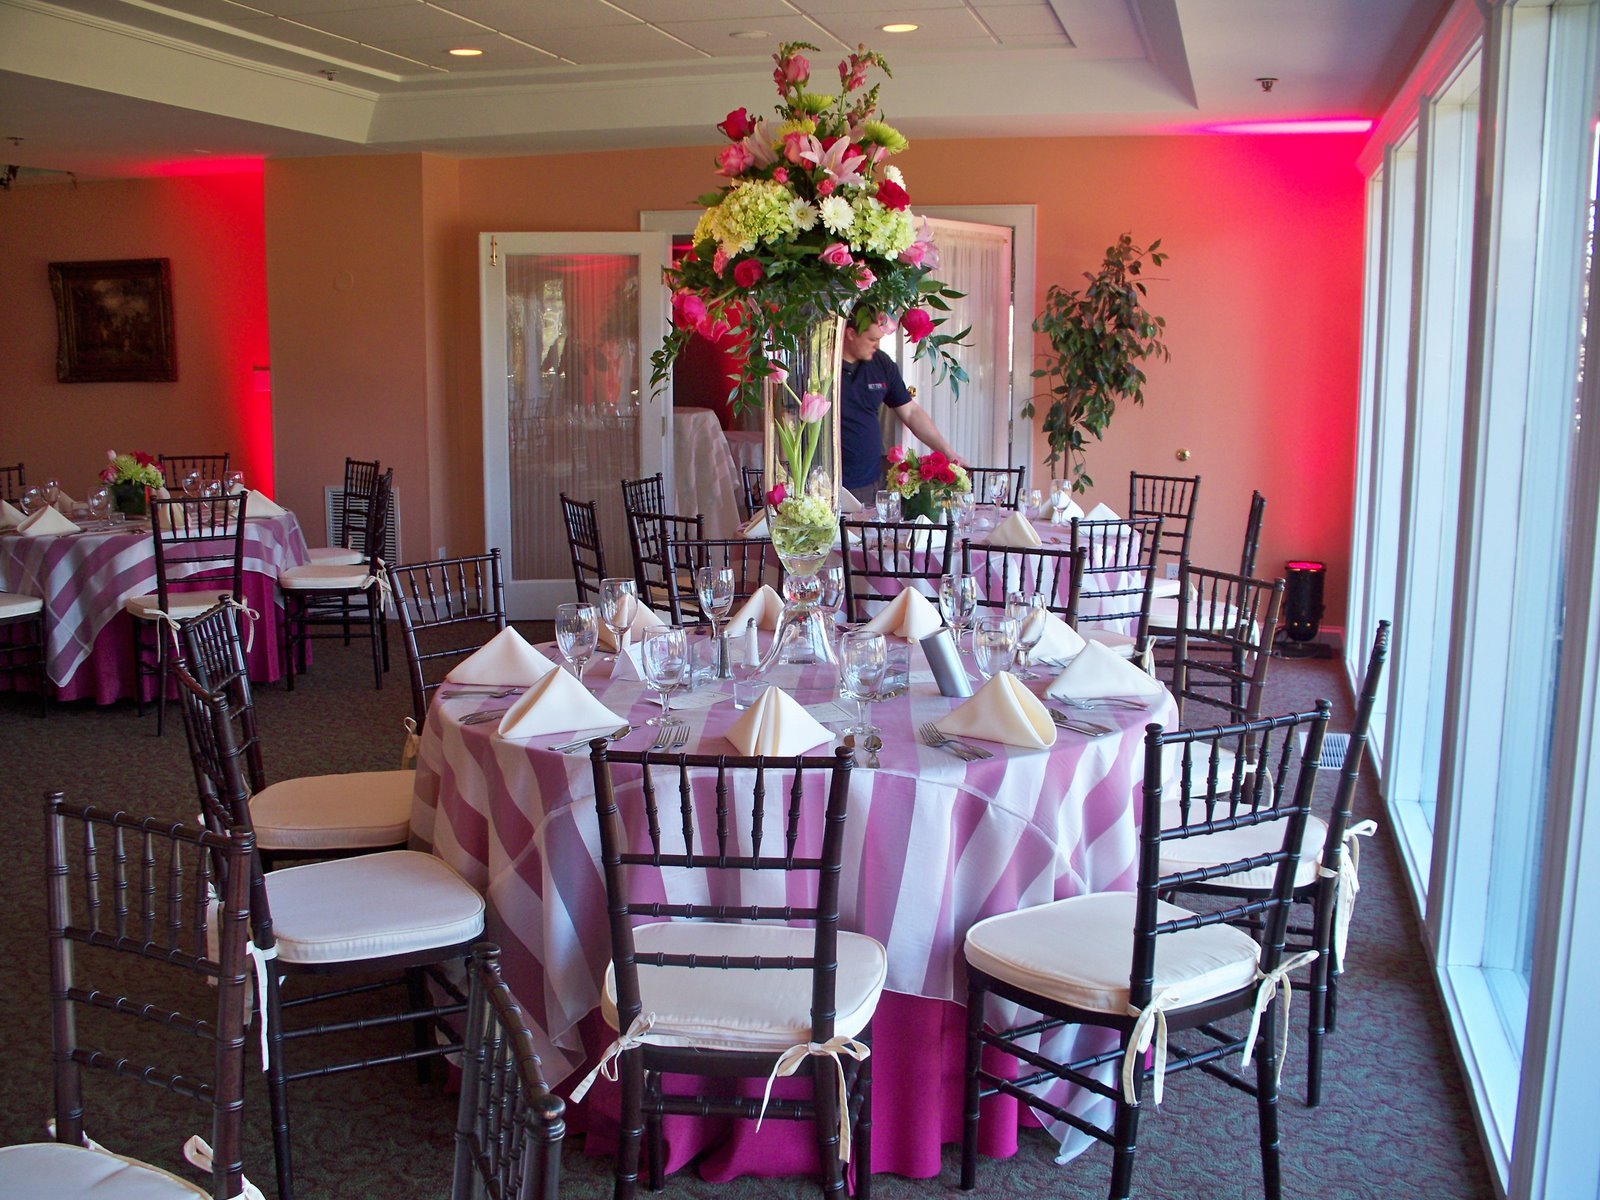 What Tables Do You Need At A Wedding: The Willrich Wedding Planner's Blog: Tables And Linens For